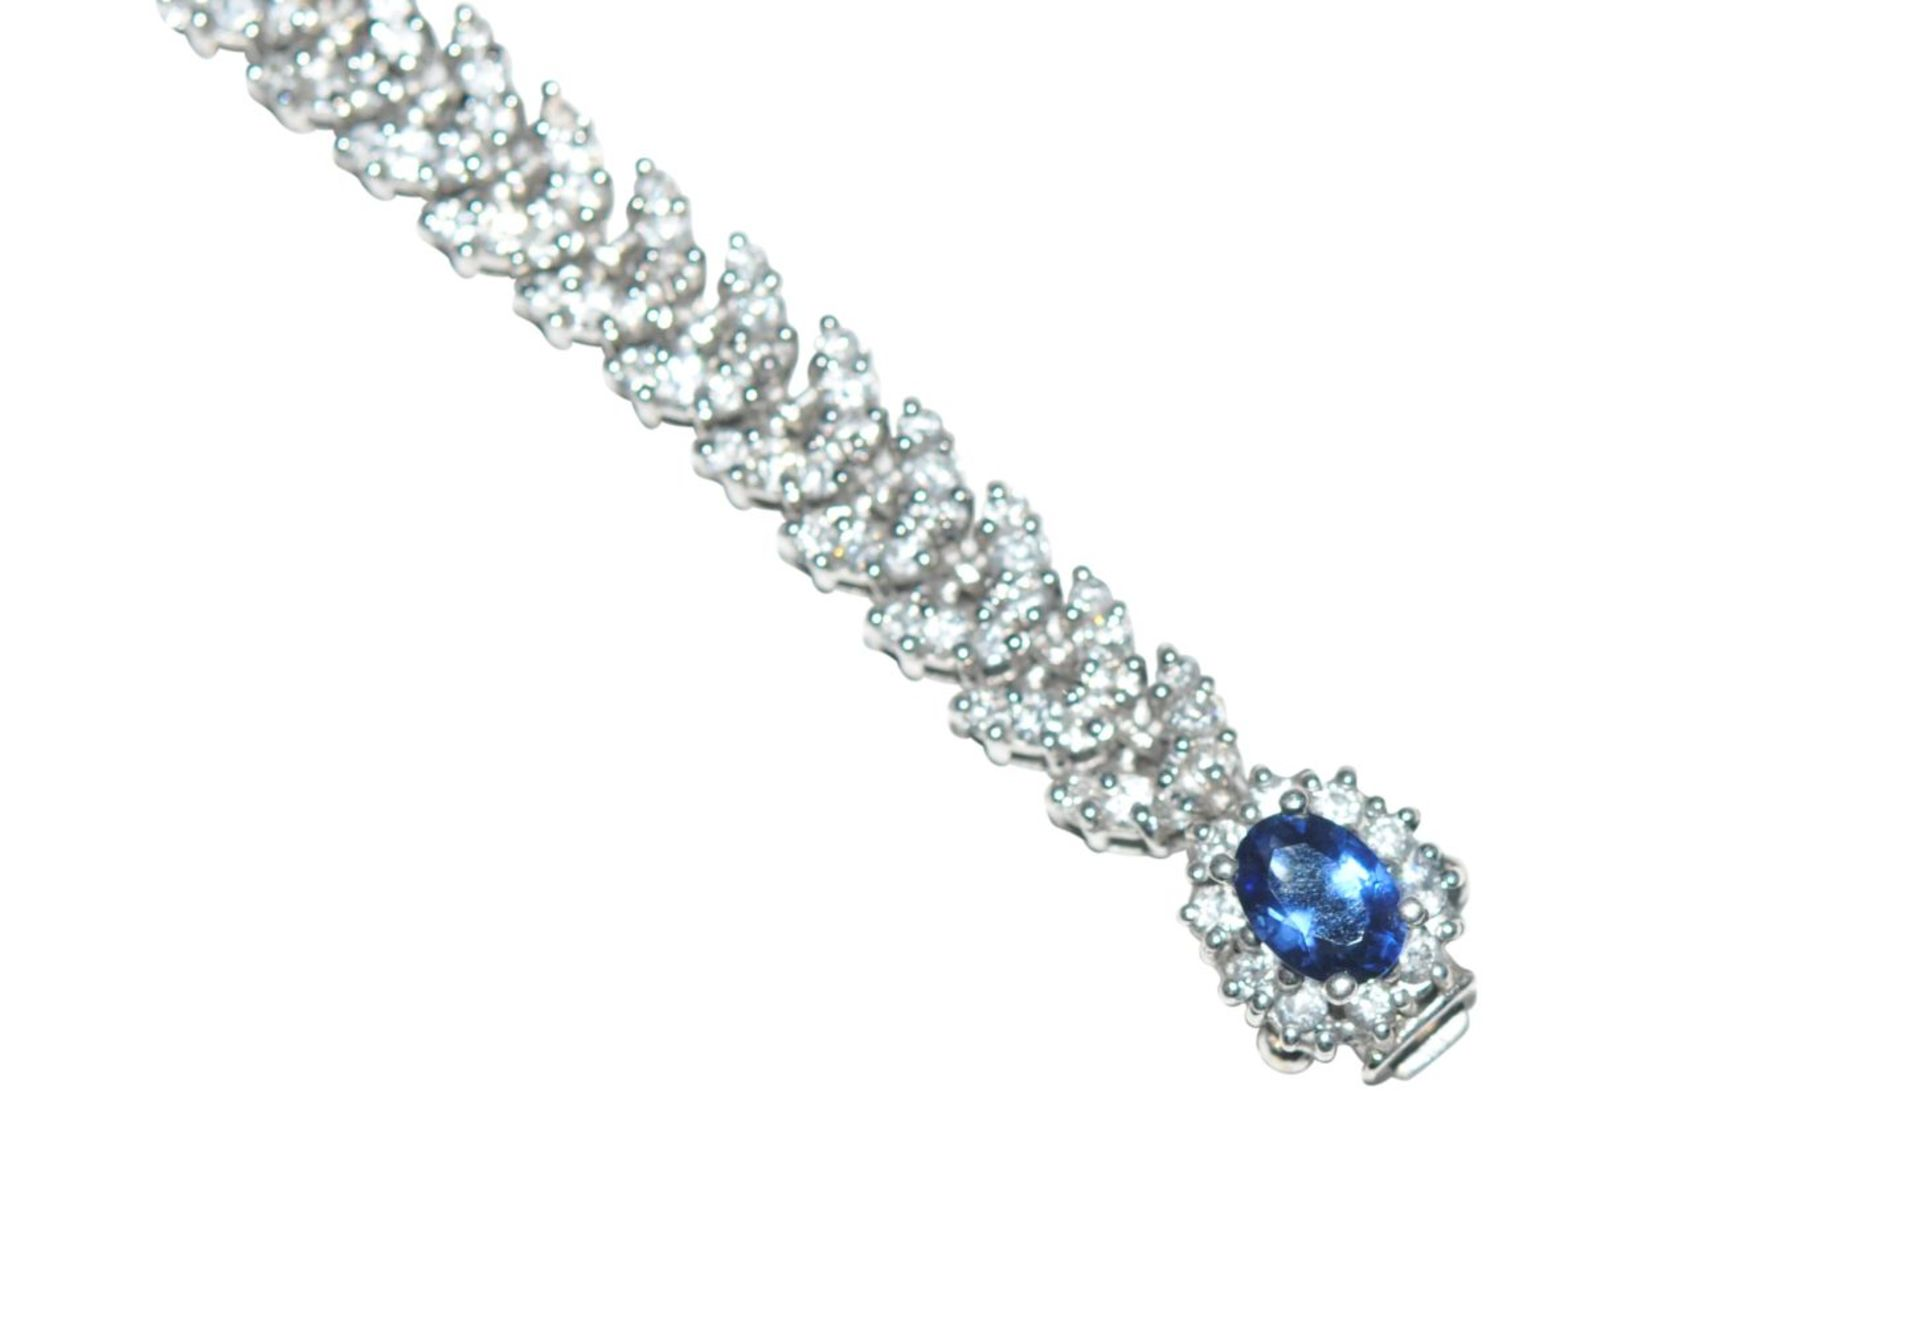 Los 118 - Brilliant braceletBracelet, white gold 18kt, with diamonds total carat weight approx. 6ct, and a